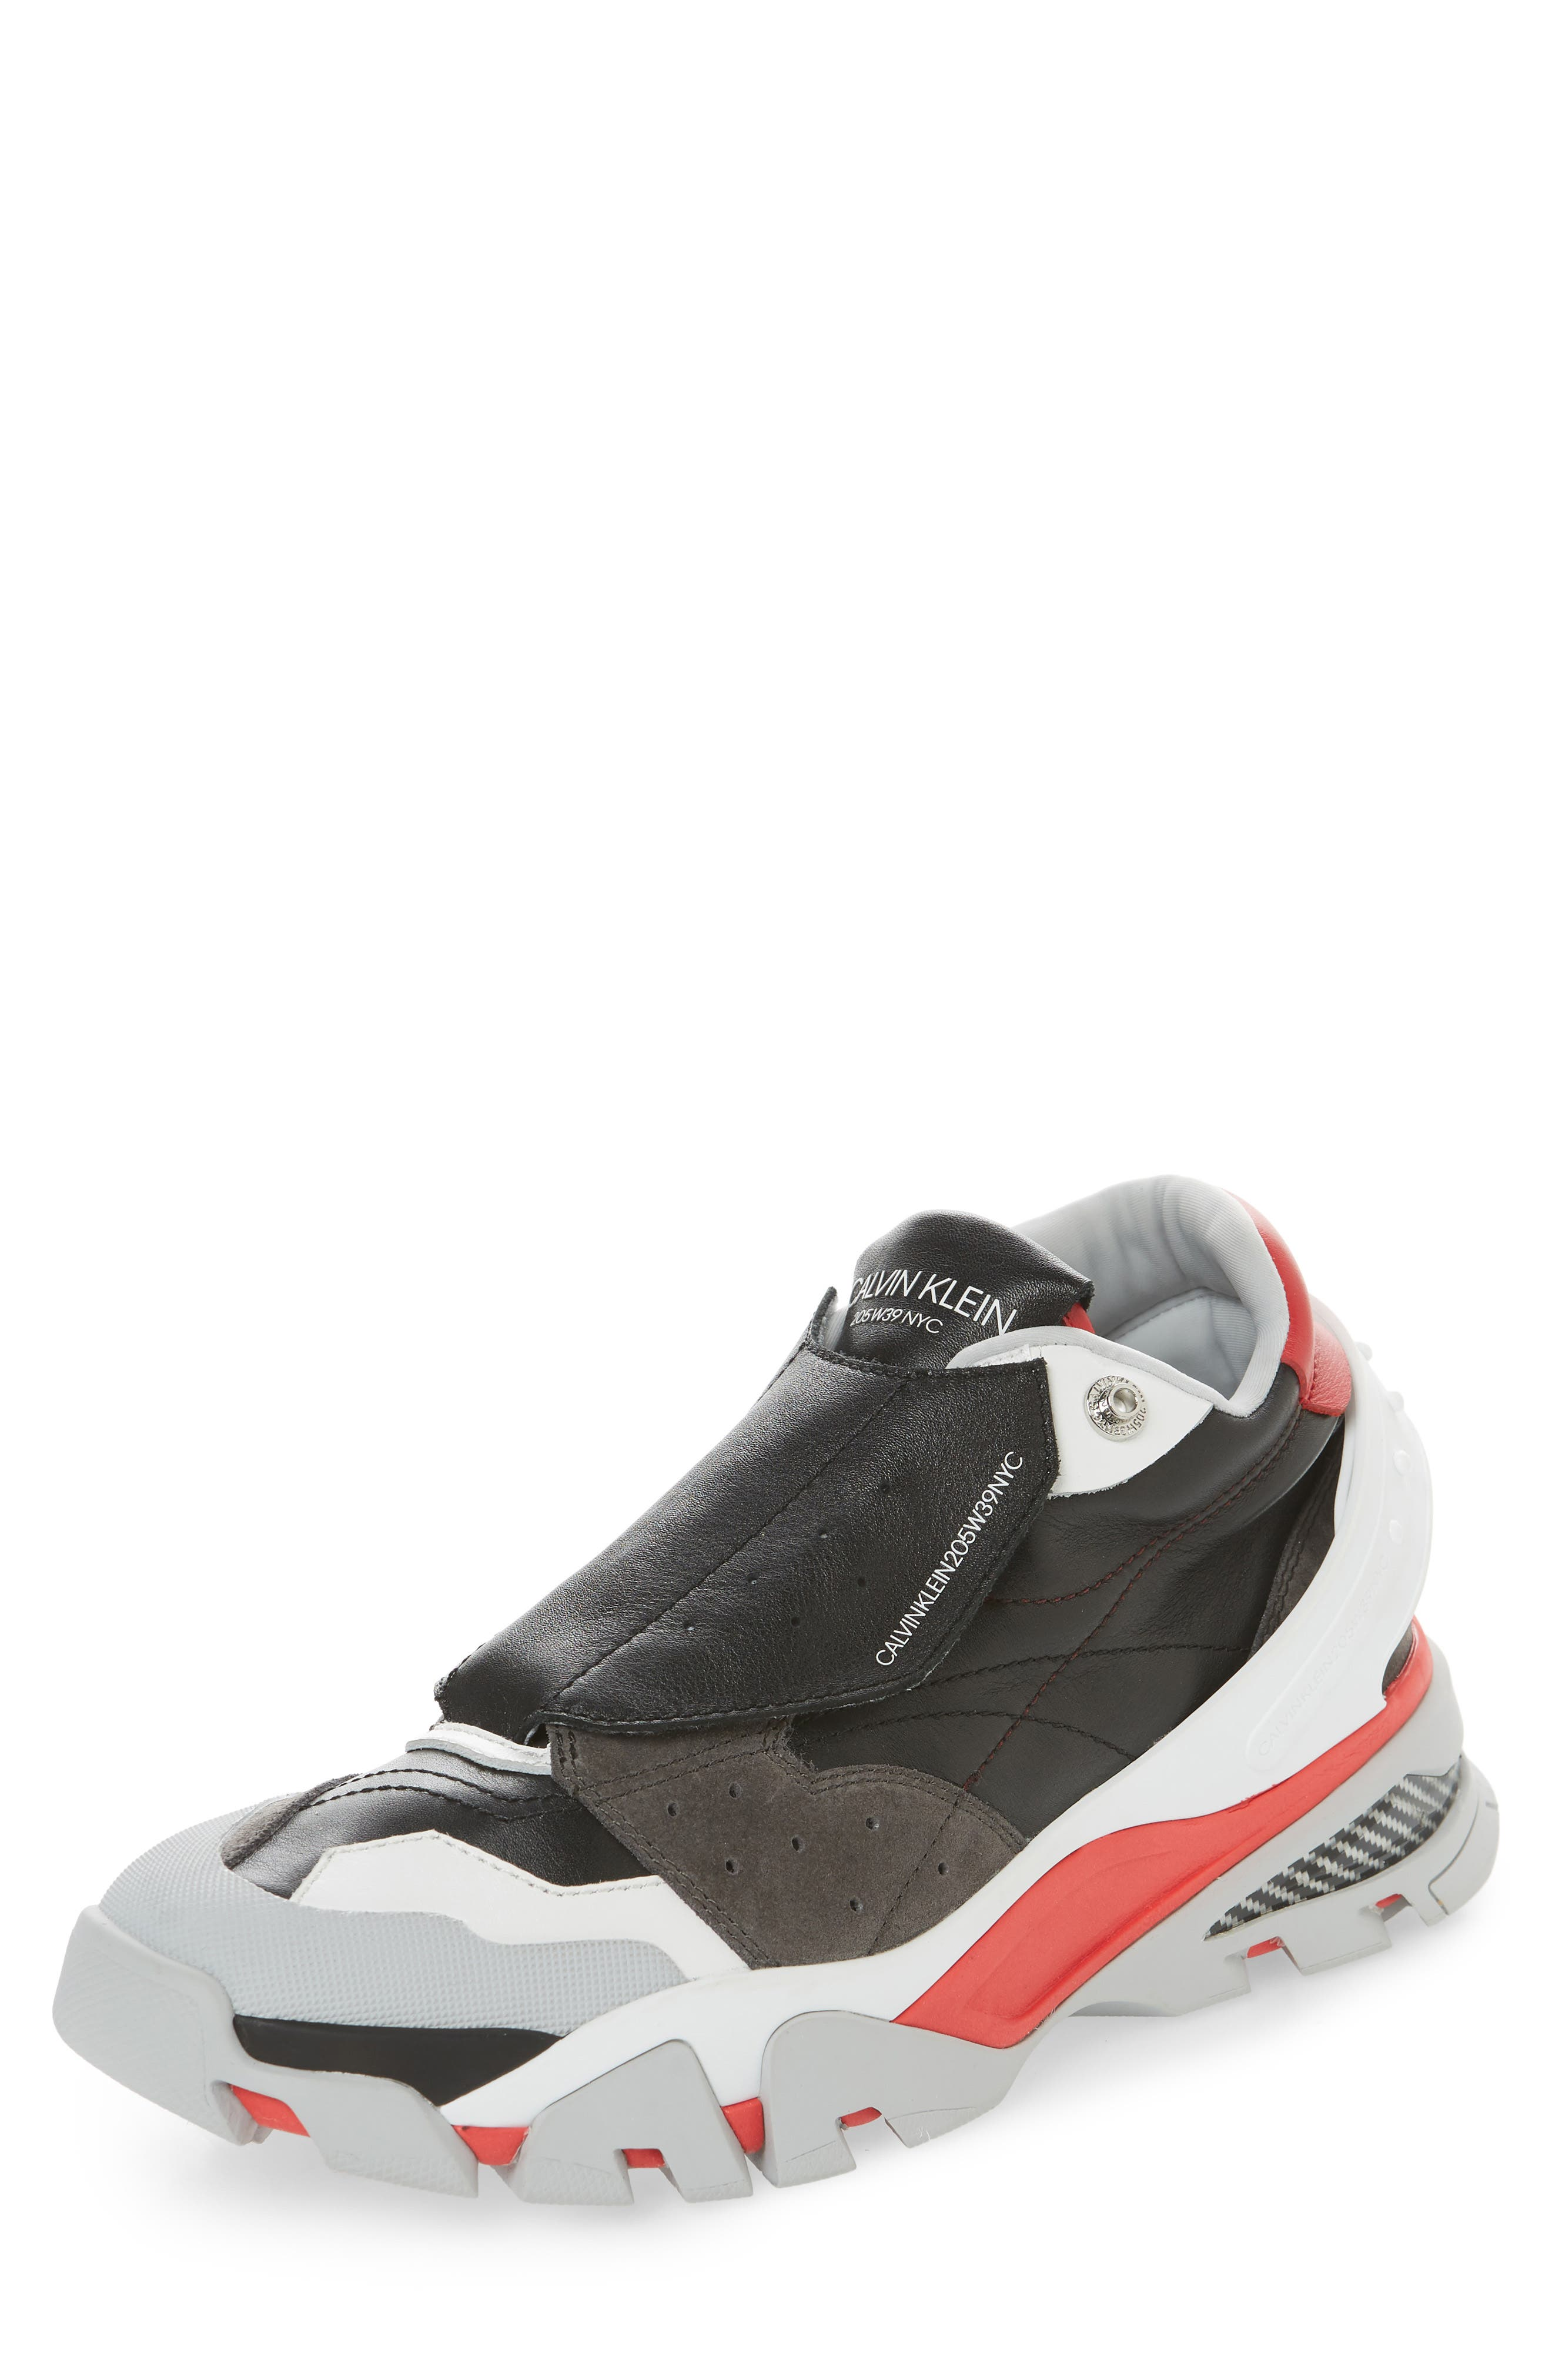 Cander 7 Sneaker,                             Main thumbnail 1, color,                             BLACK/ WHITE/ RED/ GREY